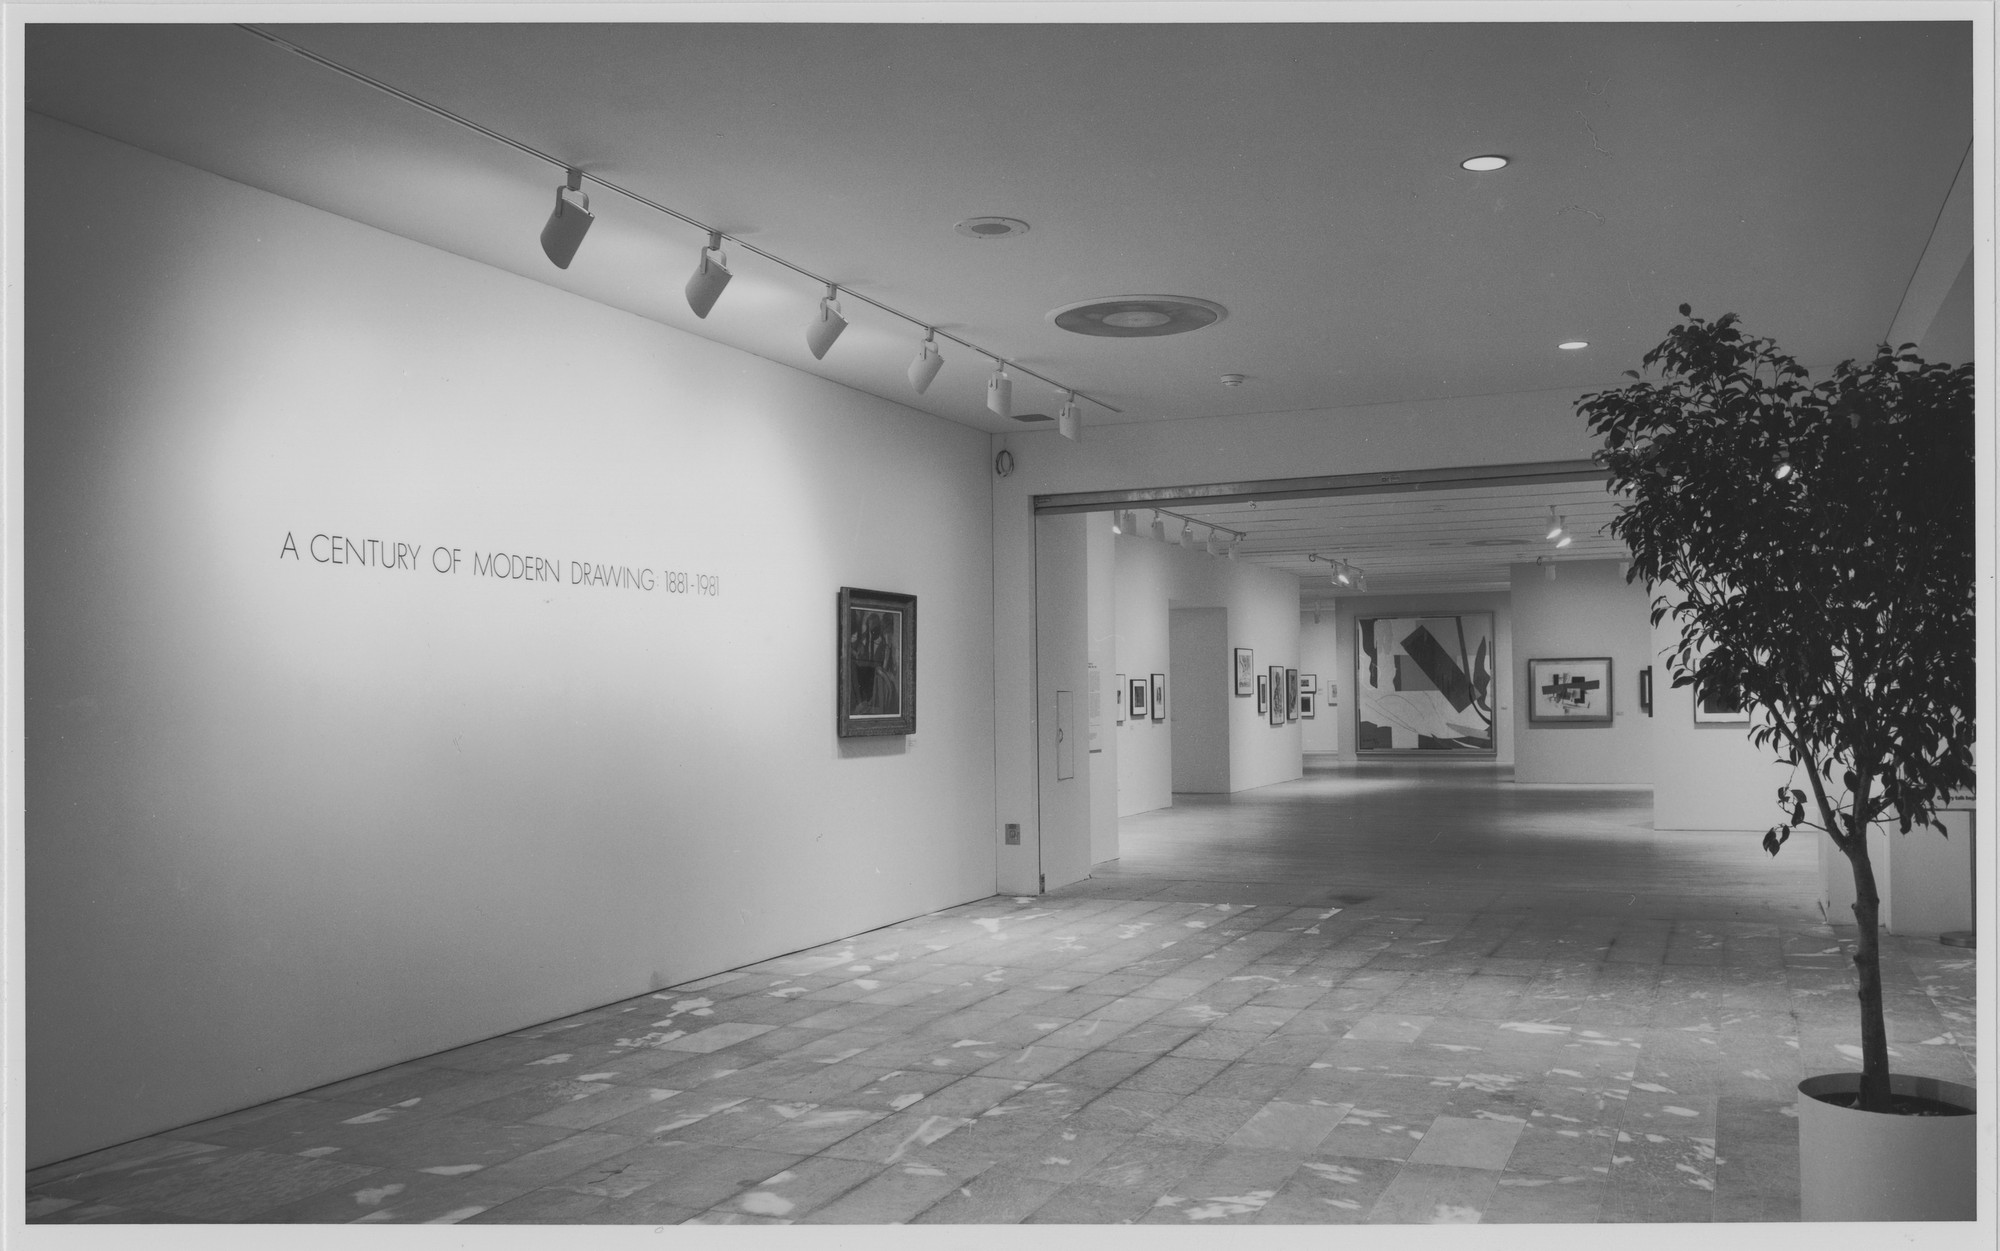 "Installation view of the exhibition, ""A Century of Modern Drawings"" March 1, 1982–March 16, 1982. Photographic Archive. The Museum of Modern Art Archives, New York. IN1329.1. Photograph by Mali Olatunji."